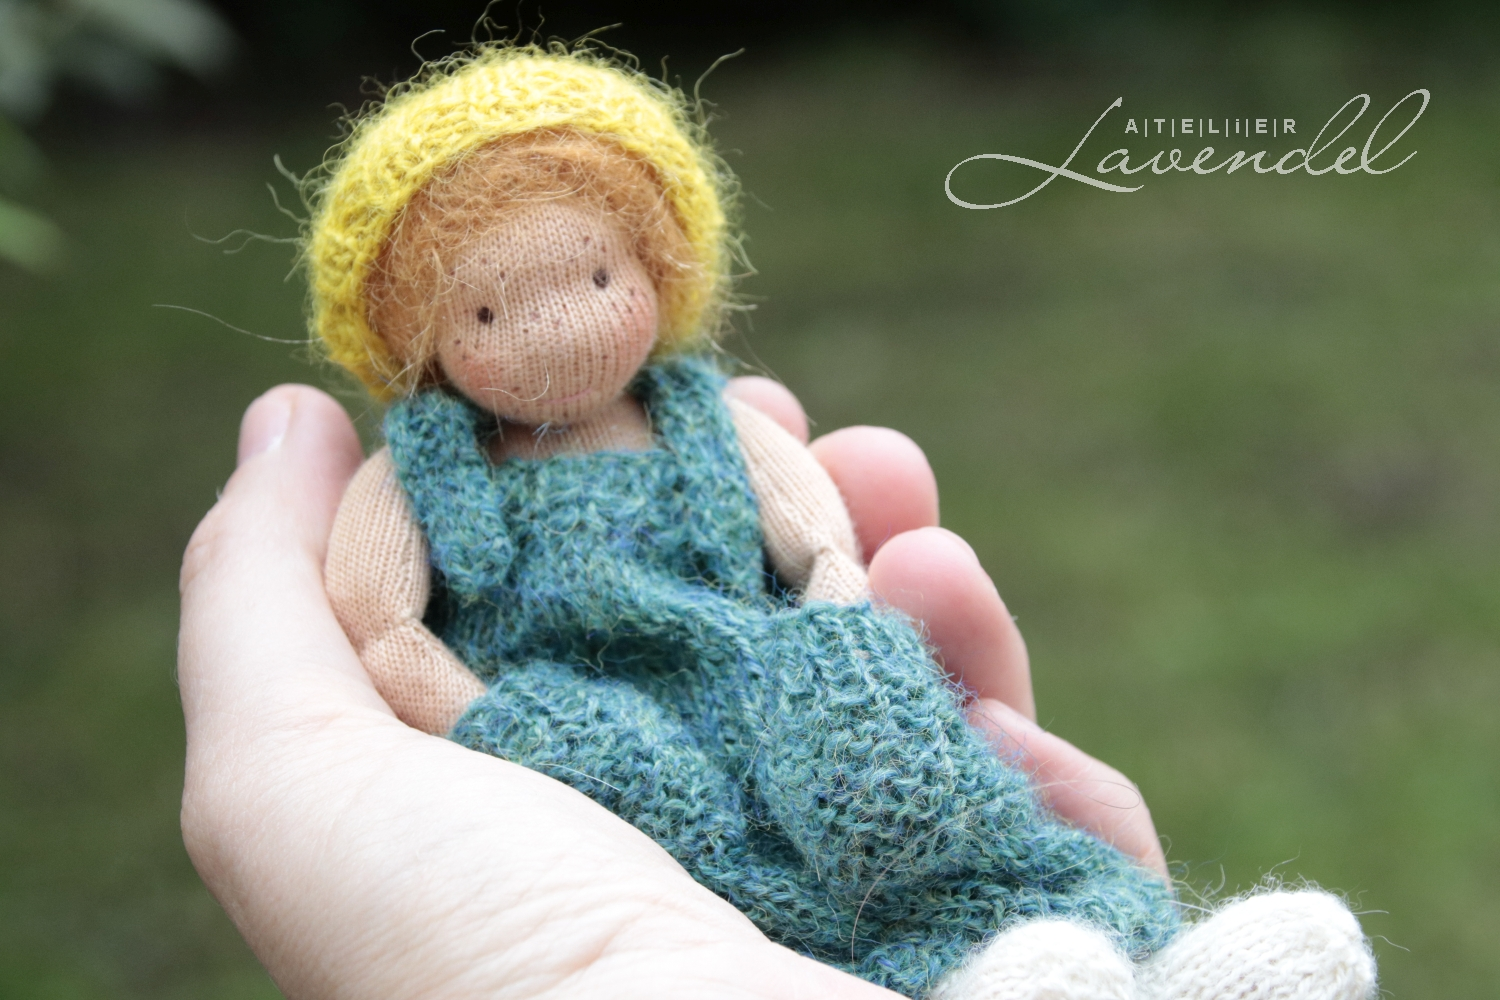 Atelier Lavendel Dolls: Waldorf Doll Seminar 2018 in Elspeet, the Netherlands, has passed as a firework of all kinds of beautiful impressions around the doll art and Waldorf doll making.